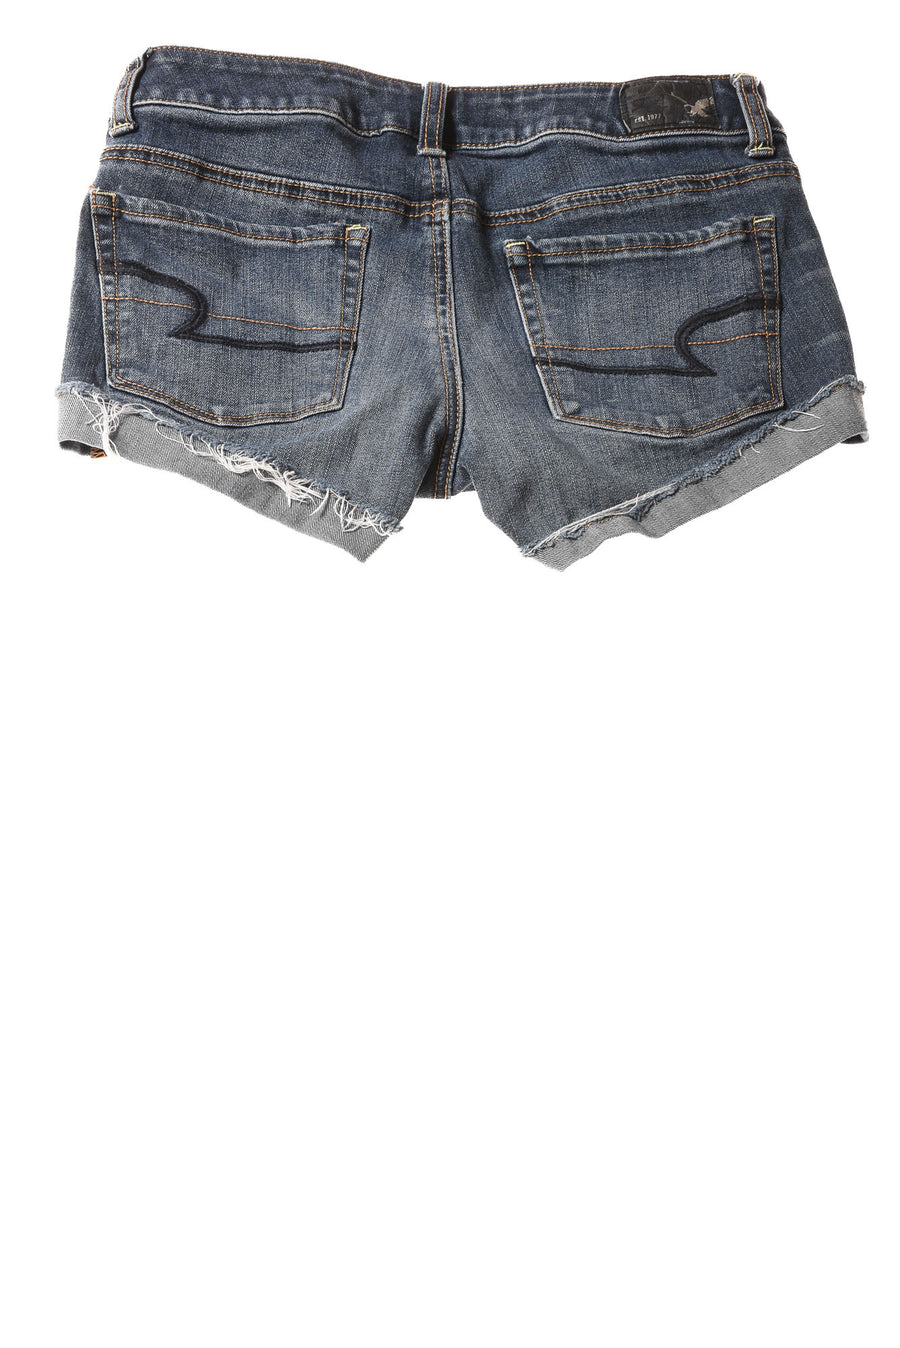 USED American Eagle Women's Shorts 2 Blue